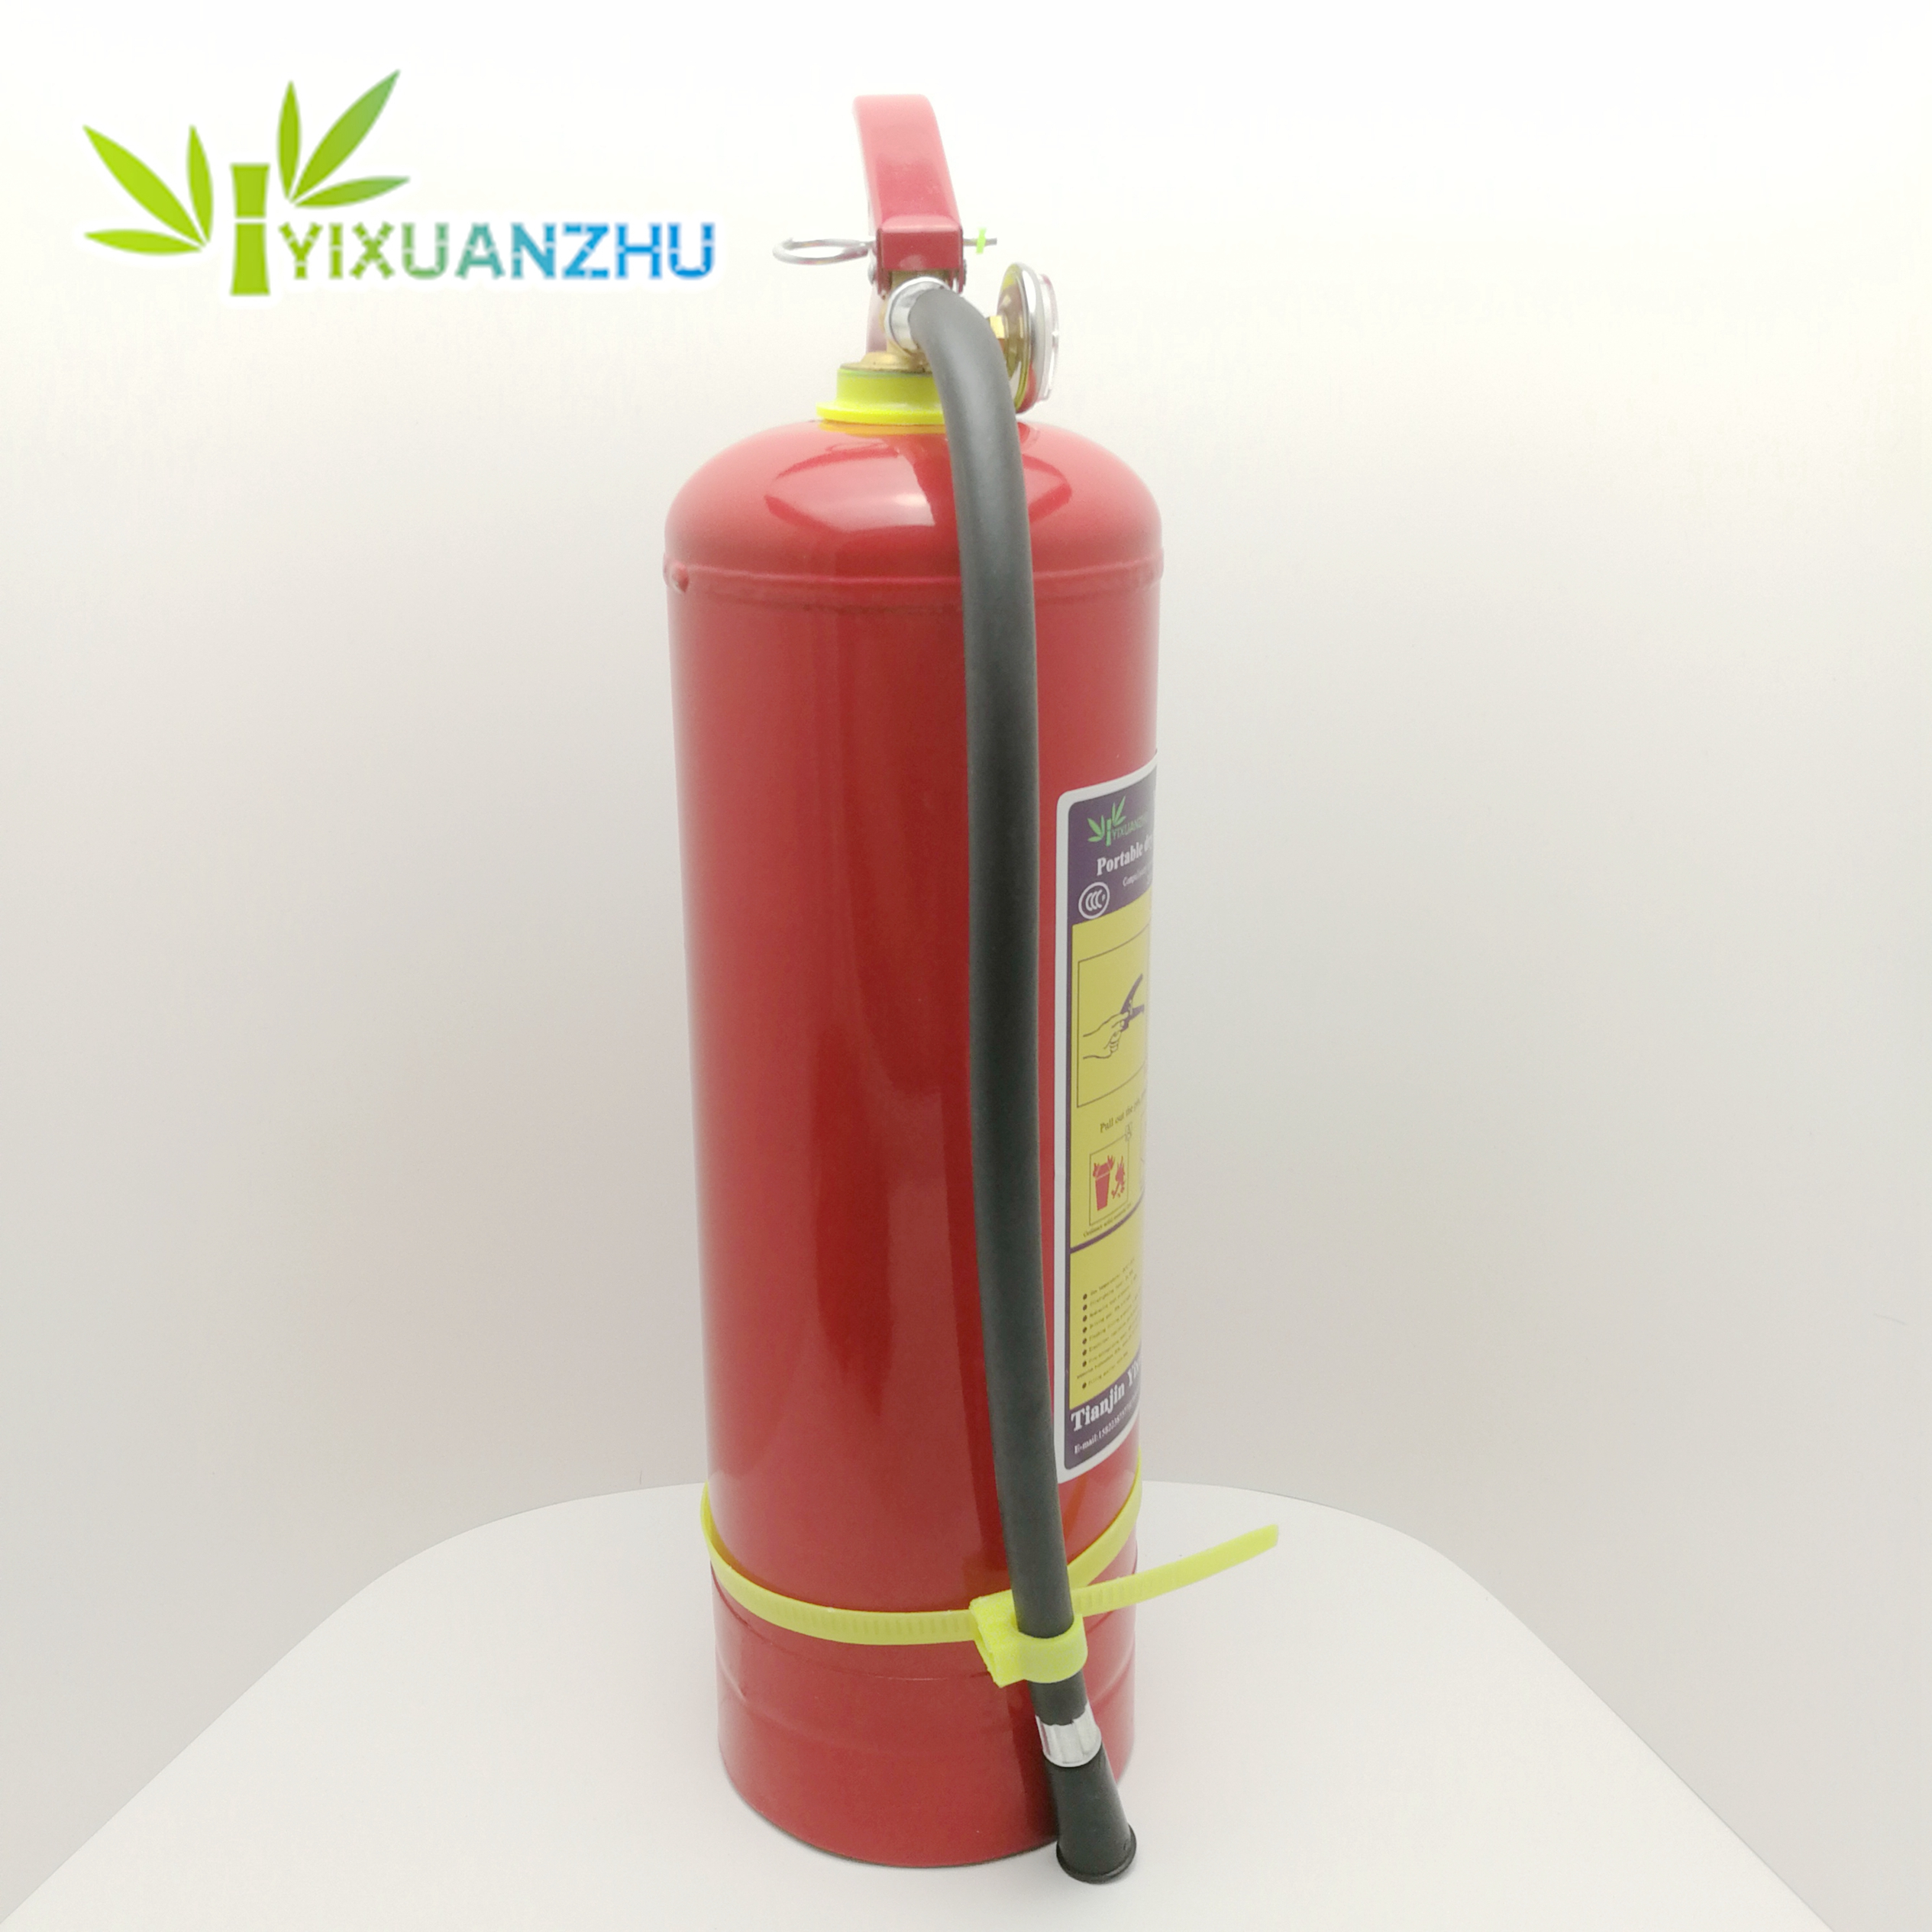 rechargeable kitchen s multi purpose extinguishers fire extinguisher ca security safety canada lb lowe hardware